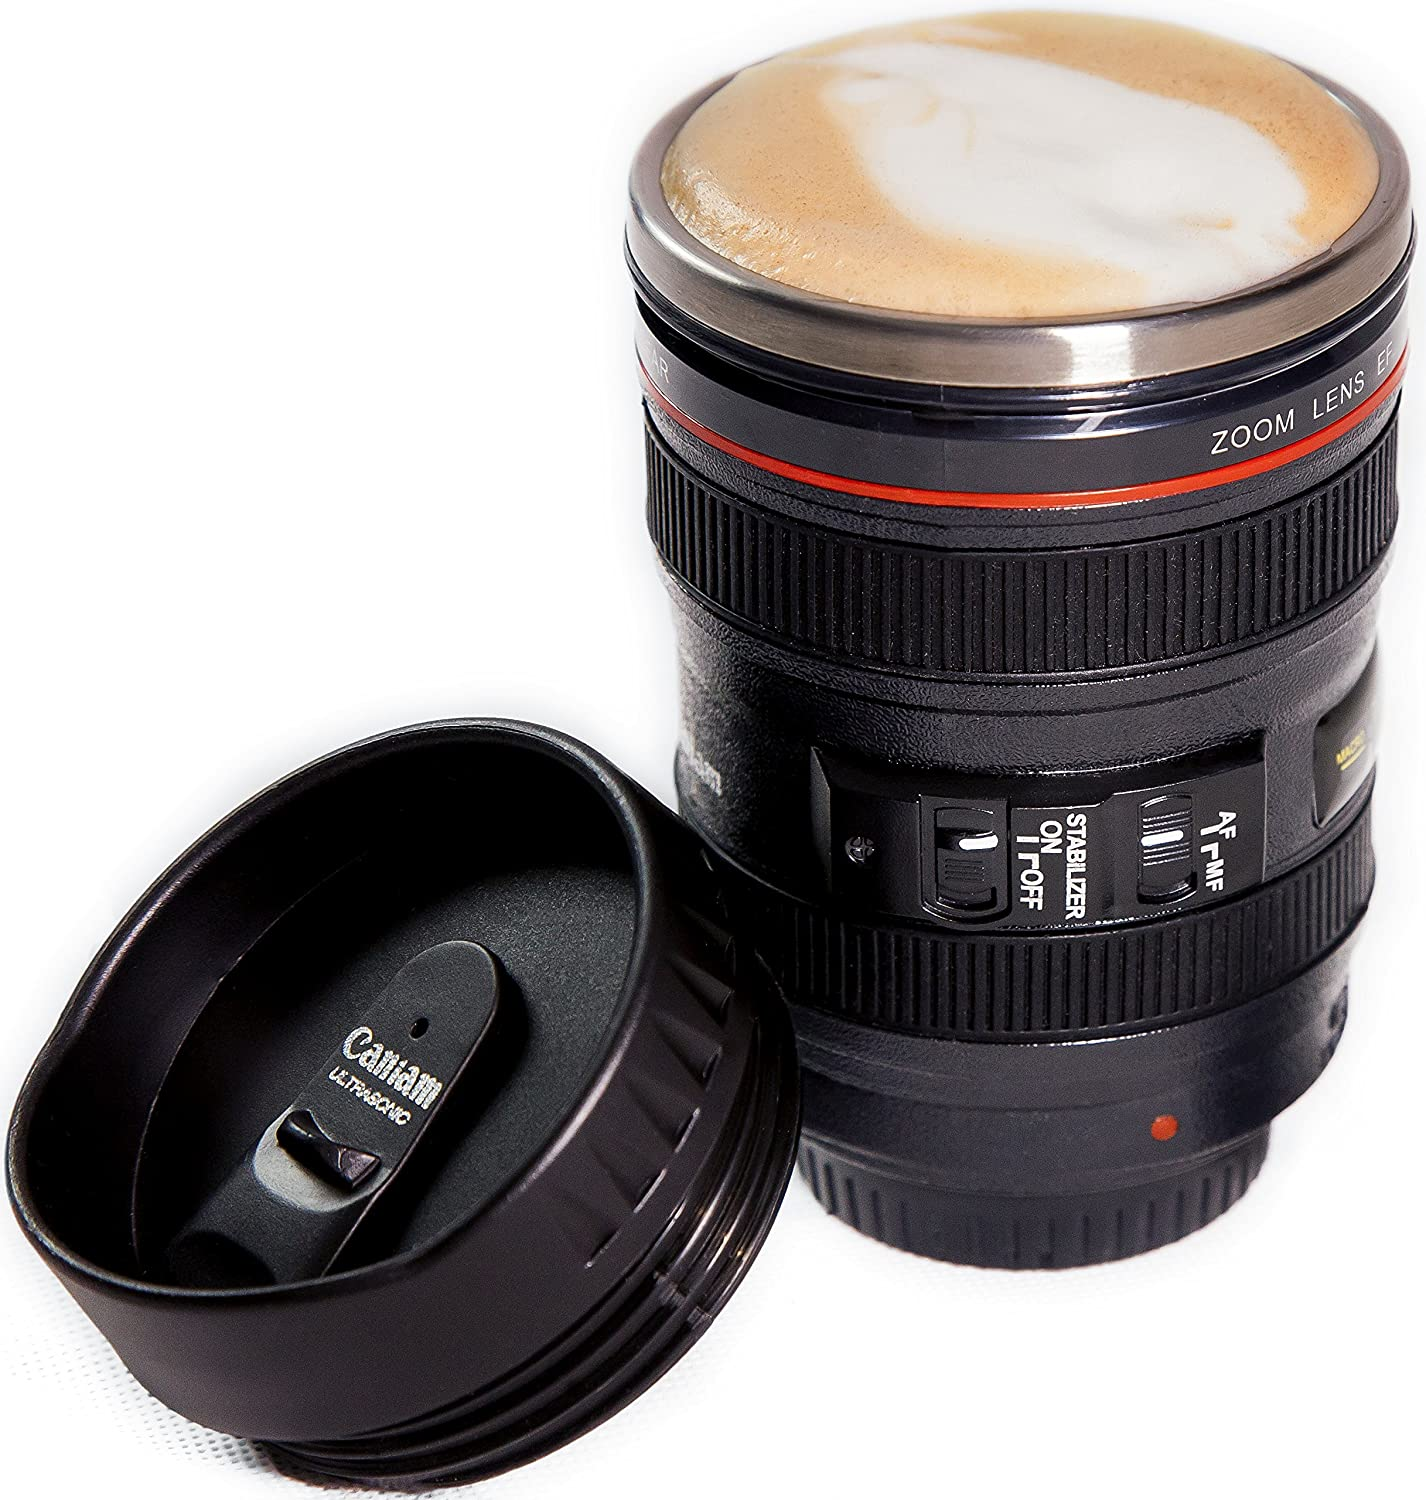 Camera Lens Coffee Mug Ideal for Travel Mug Only Best Photographer Gift Authentic Replica of the Canon 24-105mm Lens